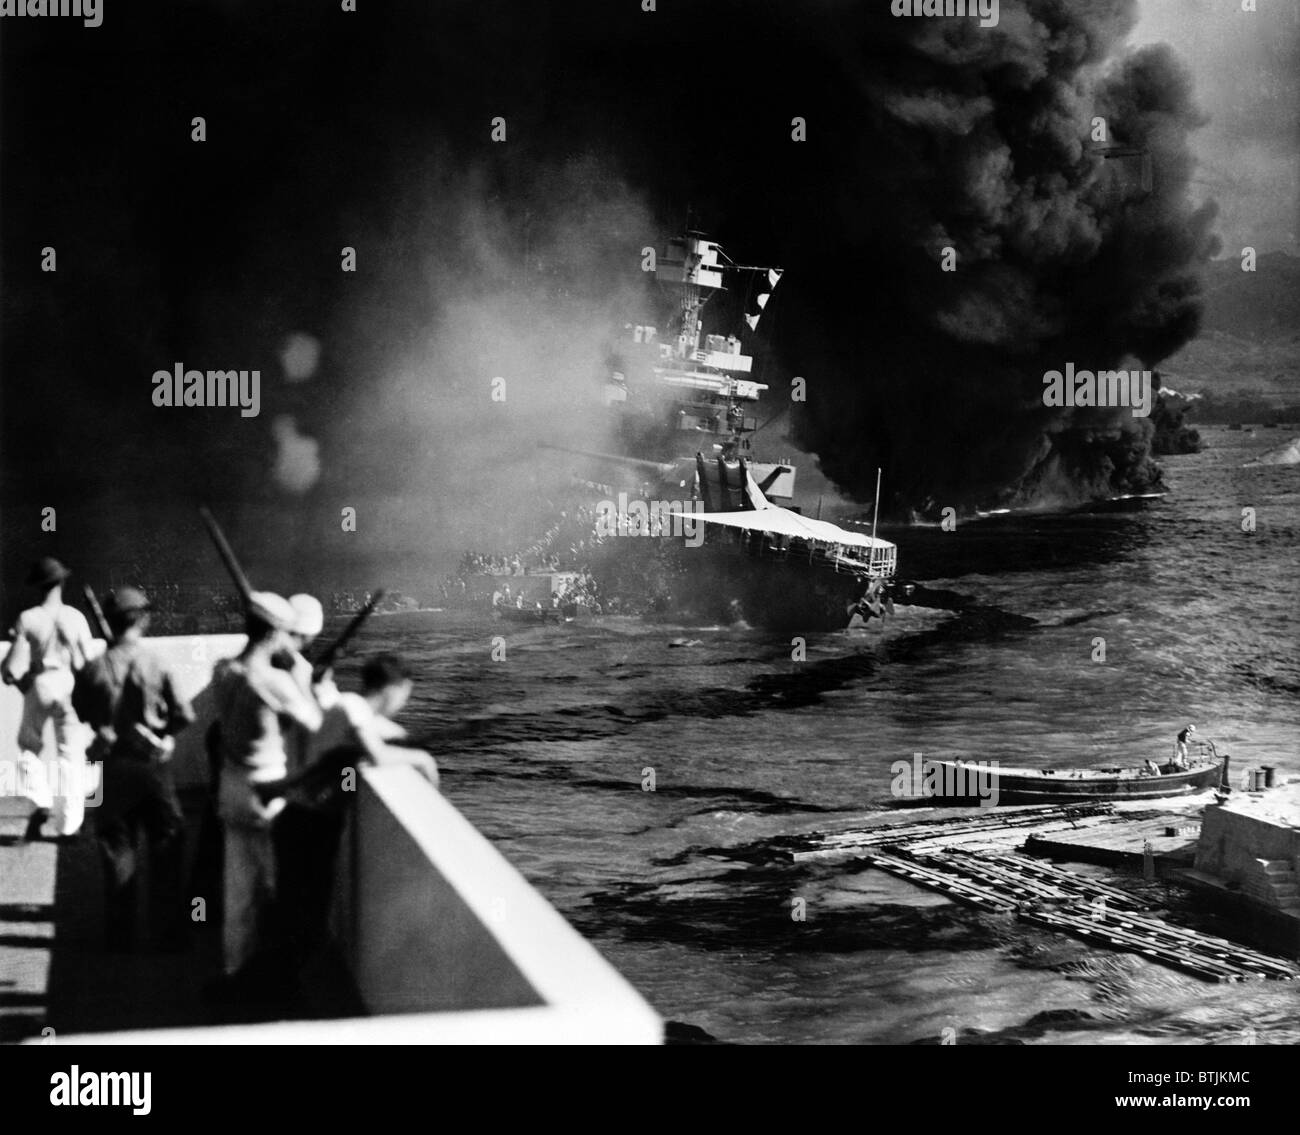 Pearl Harbor: Battered by aerial bombs and torpedoes, the U.S.S. California is evacuated as sailors and soldiers Stock Photo